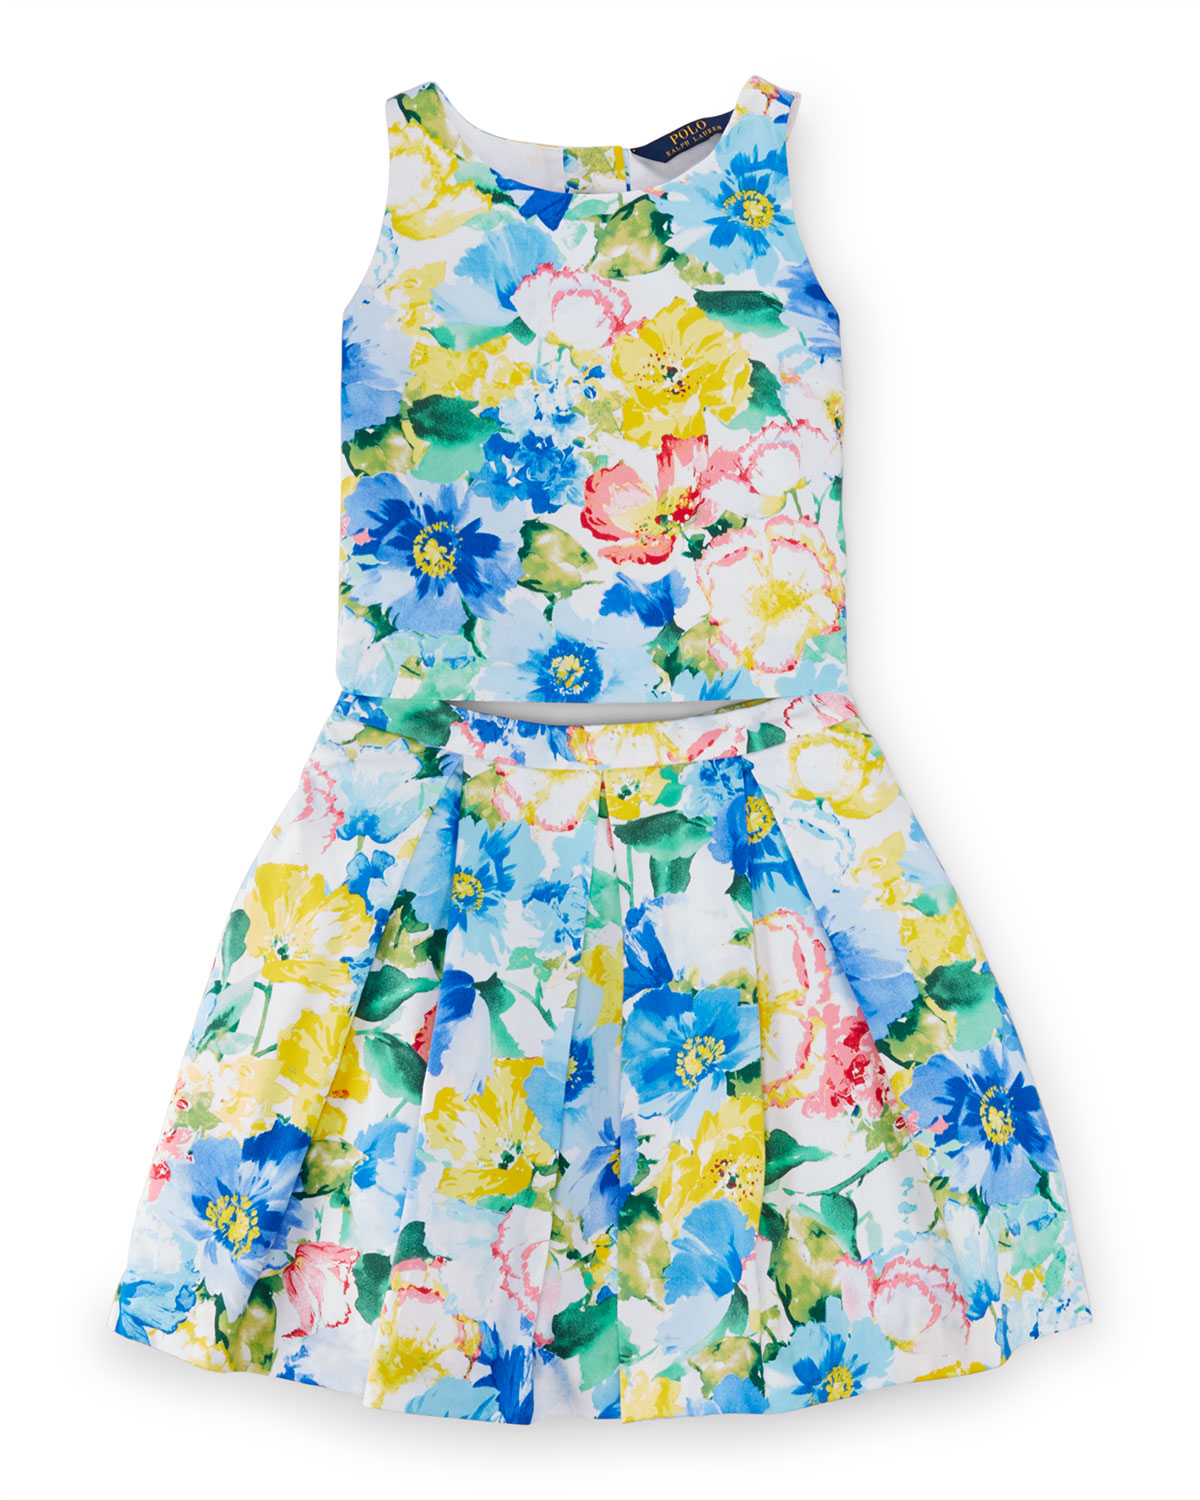 Cotton Floral Top & Pleated Skirt, Blue/White, Size 8-10